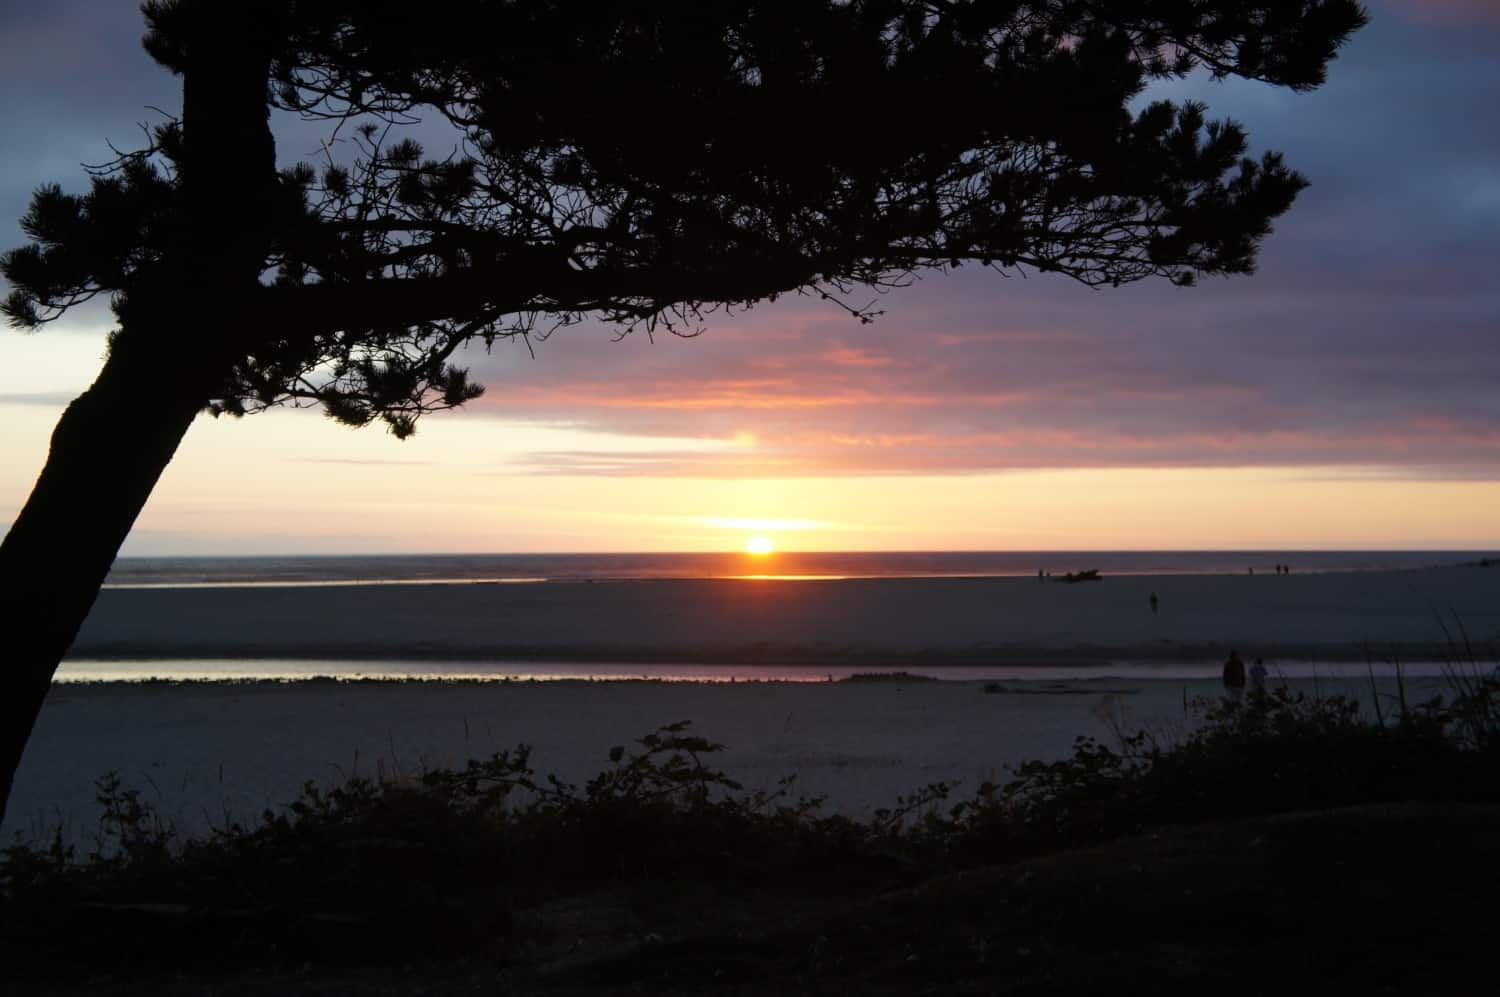 Sunset - Cannon Beach, Oregon